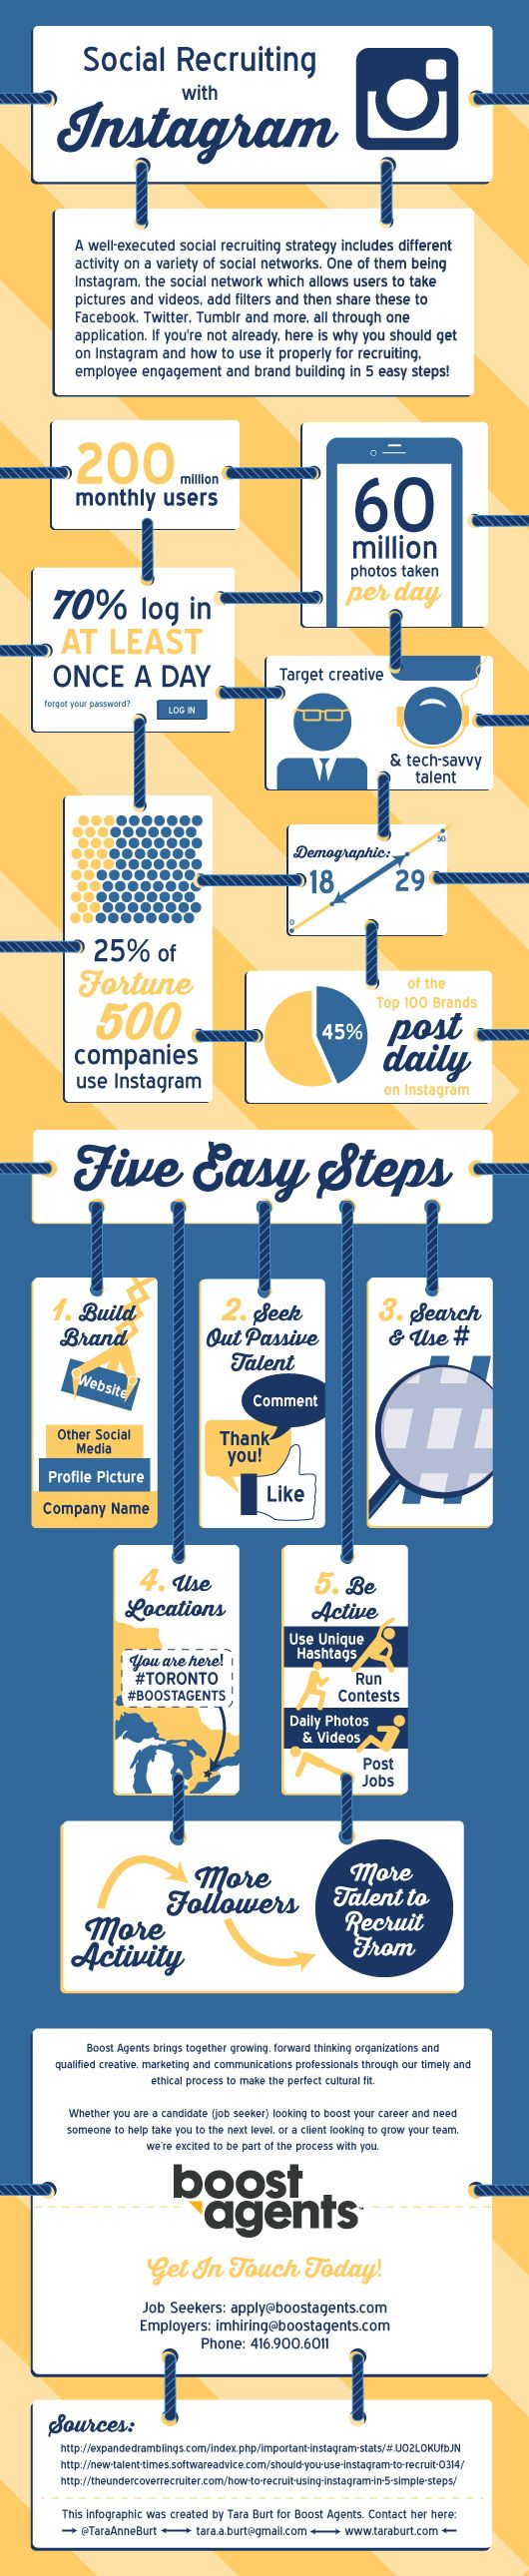 Should you use Instagram for recruiting? It depends on who you're trying to hire, but this infographic provides some interesting stats. via @Undercover Recruiter